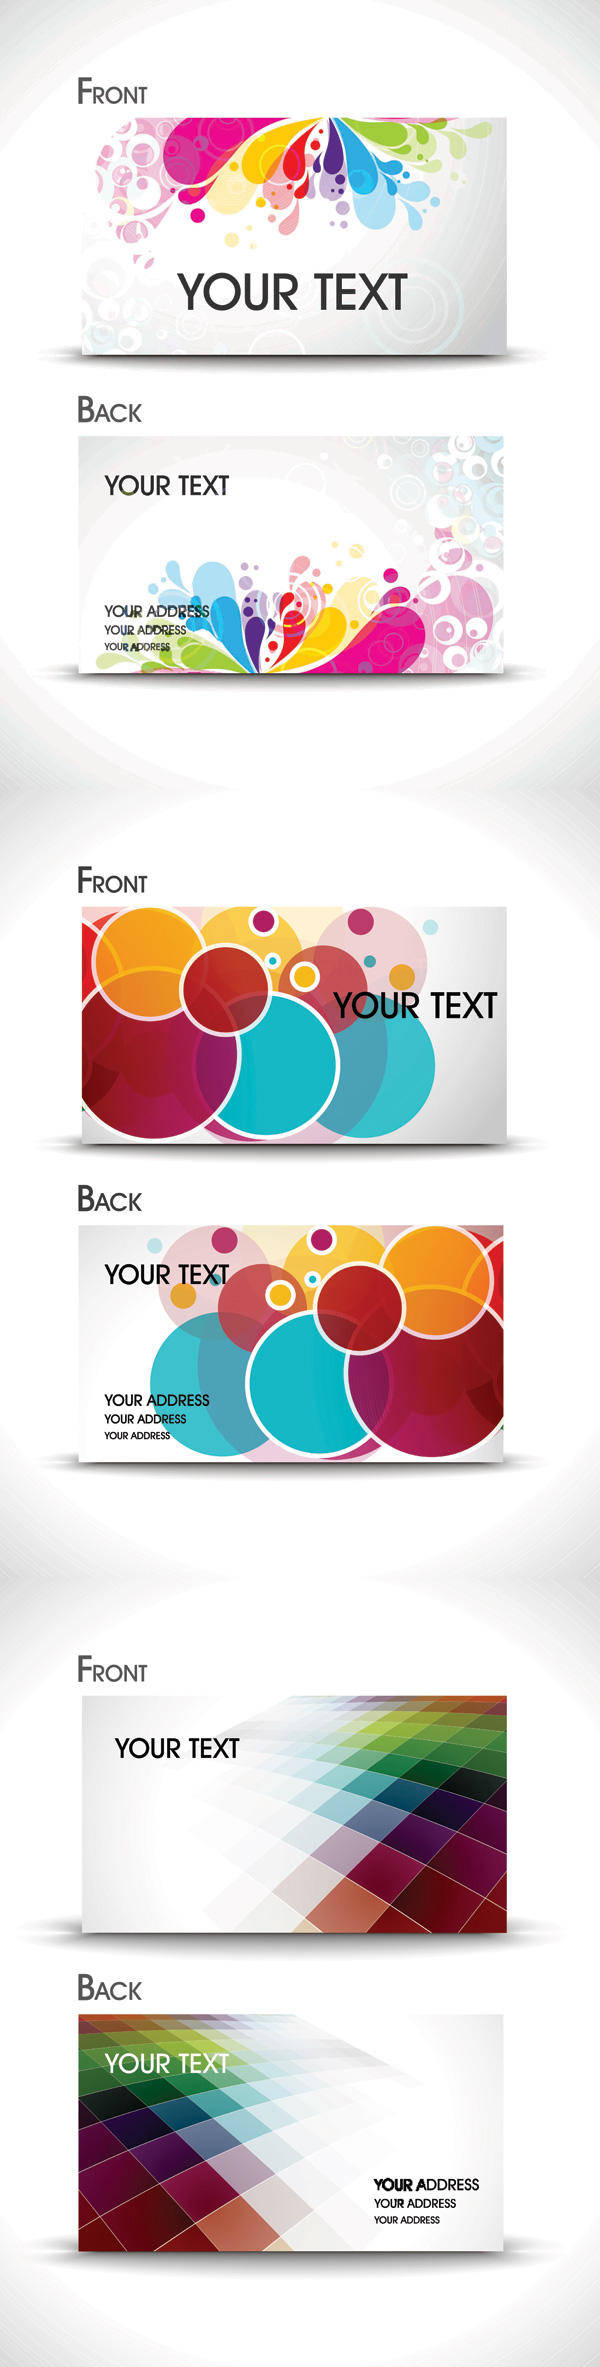 free vector Brilliant Business Card Template - Vector Material Beautiful Cards Bright